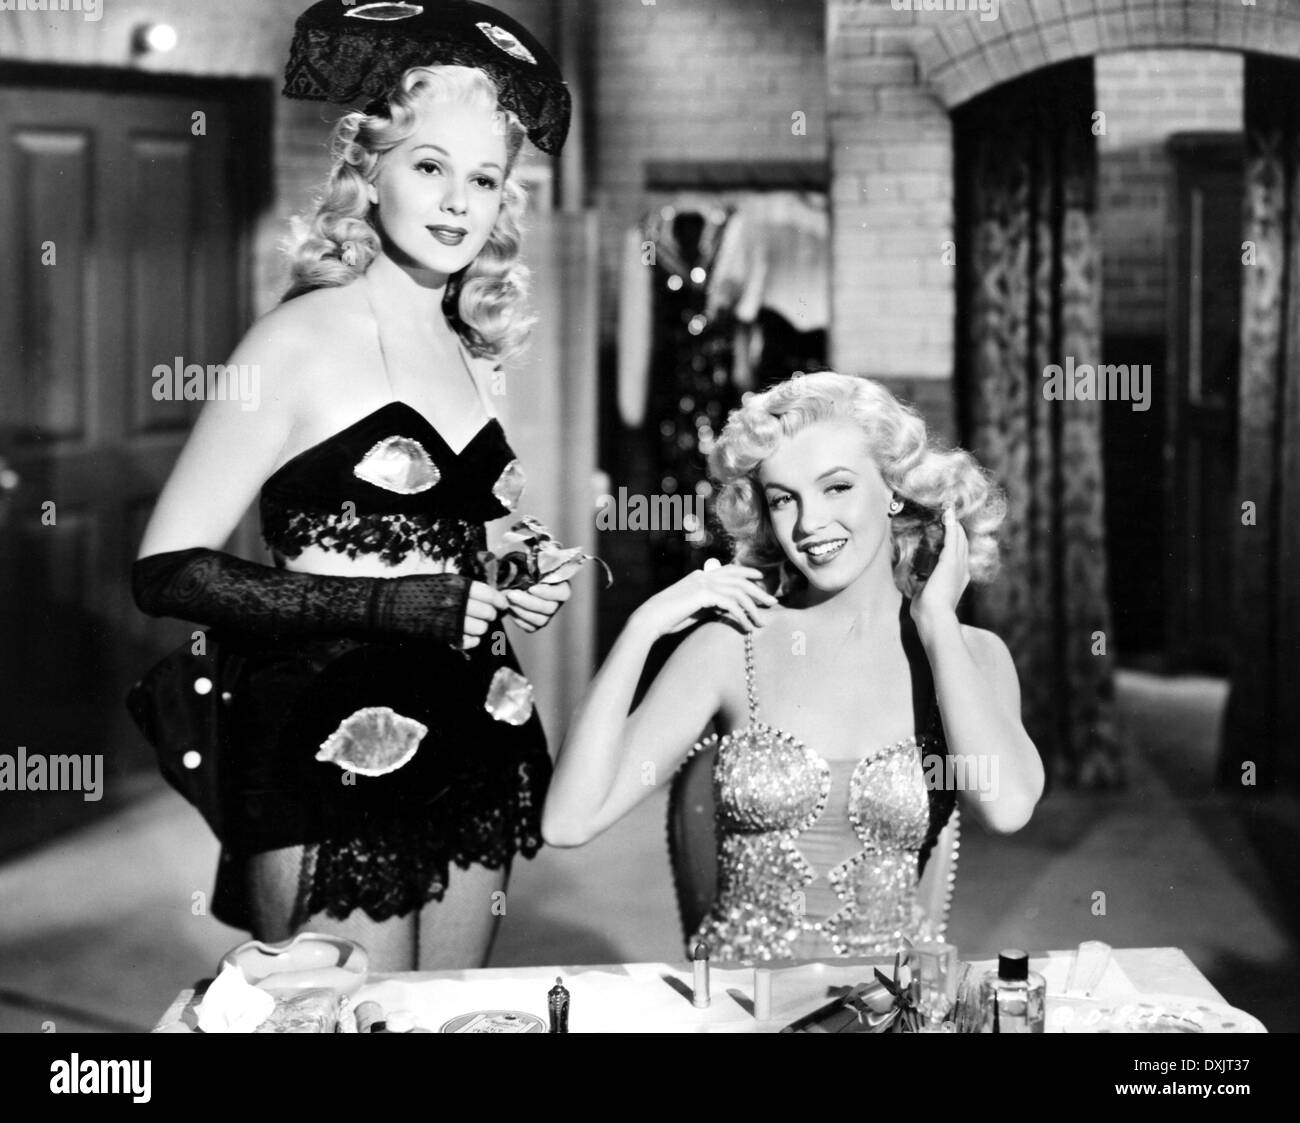 LADIES OF THE CHORUS (US1948) ADELE JERGENS, MARILYN MONROE - Stock Image